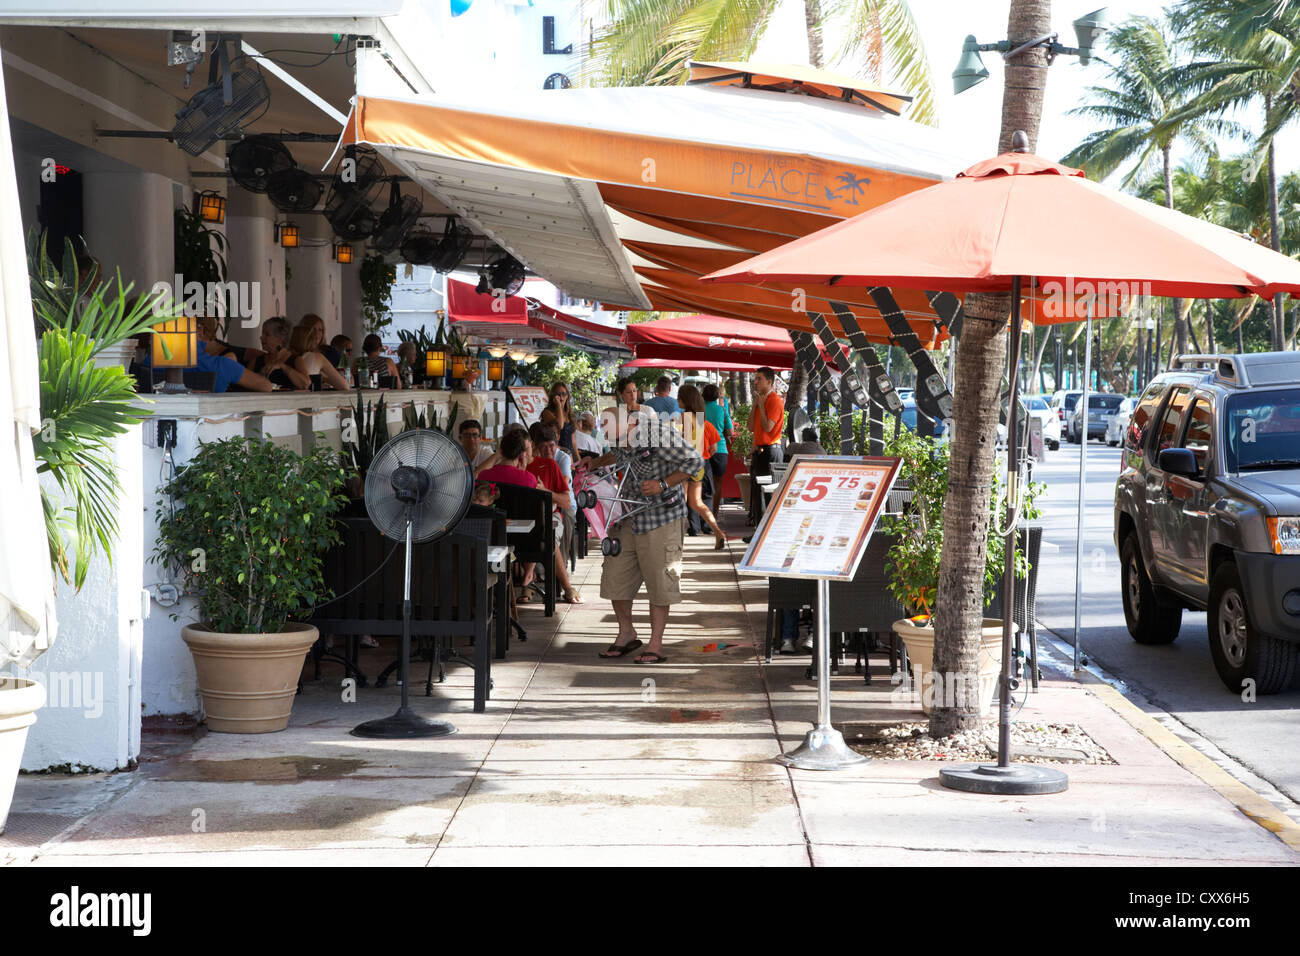 on street sidewalk cafe in the art deco historic district ocean drive miami south beach florida usa - Stock Image